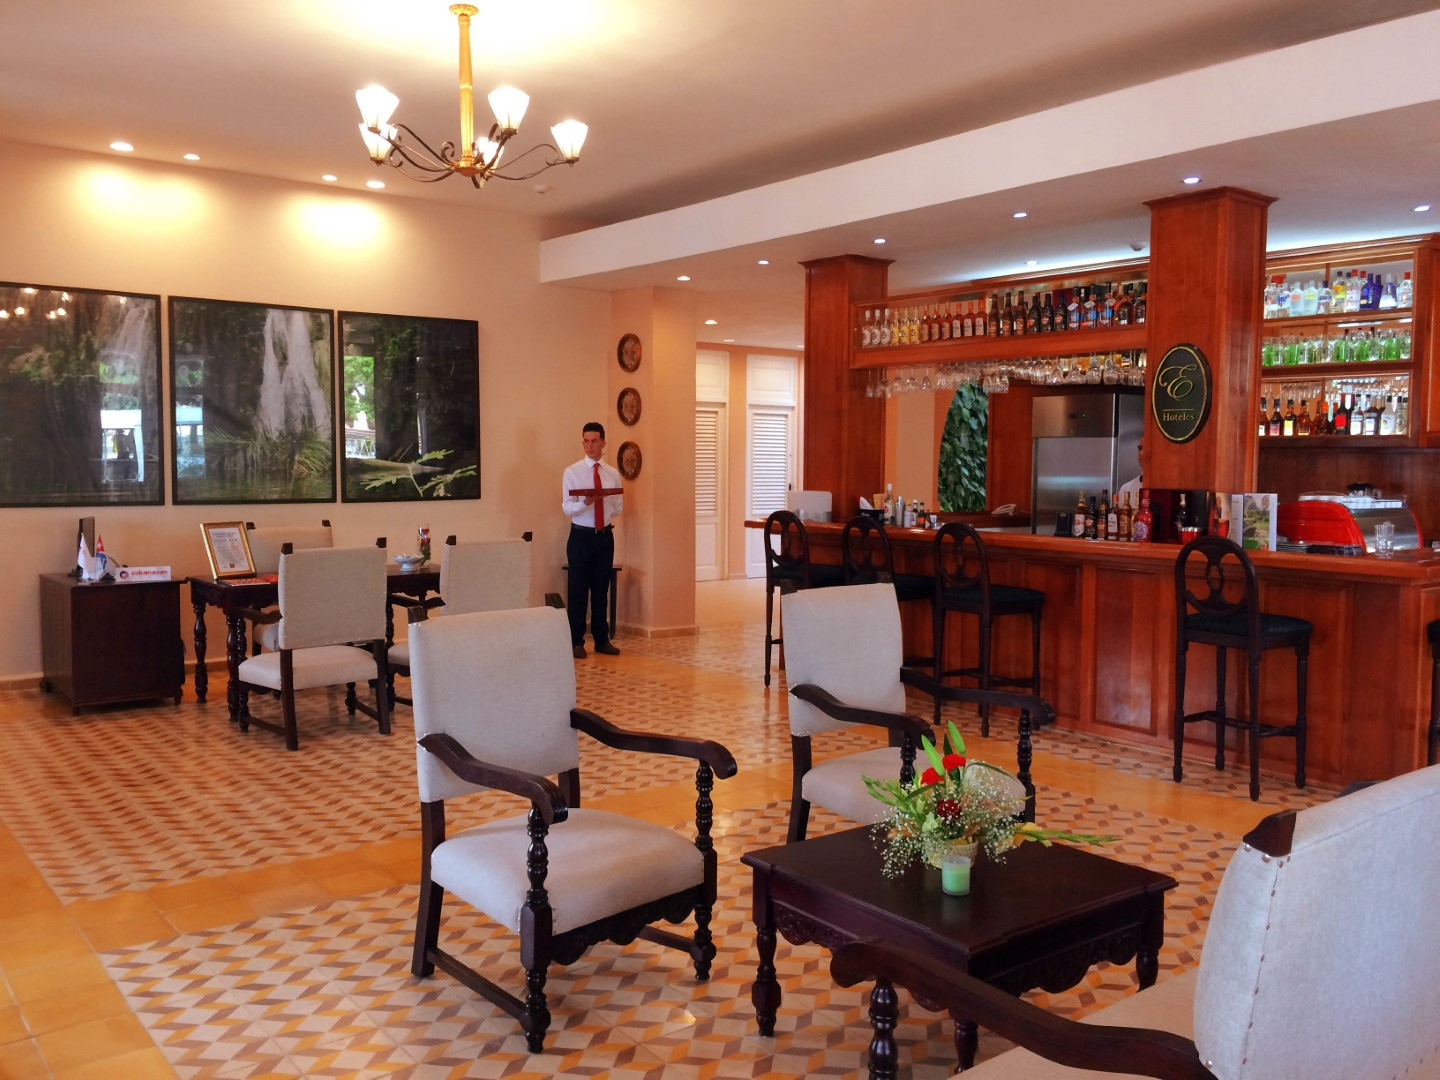 Lobby and reception area of Hotel Central in Vinales, Cuba